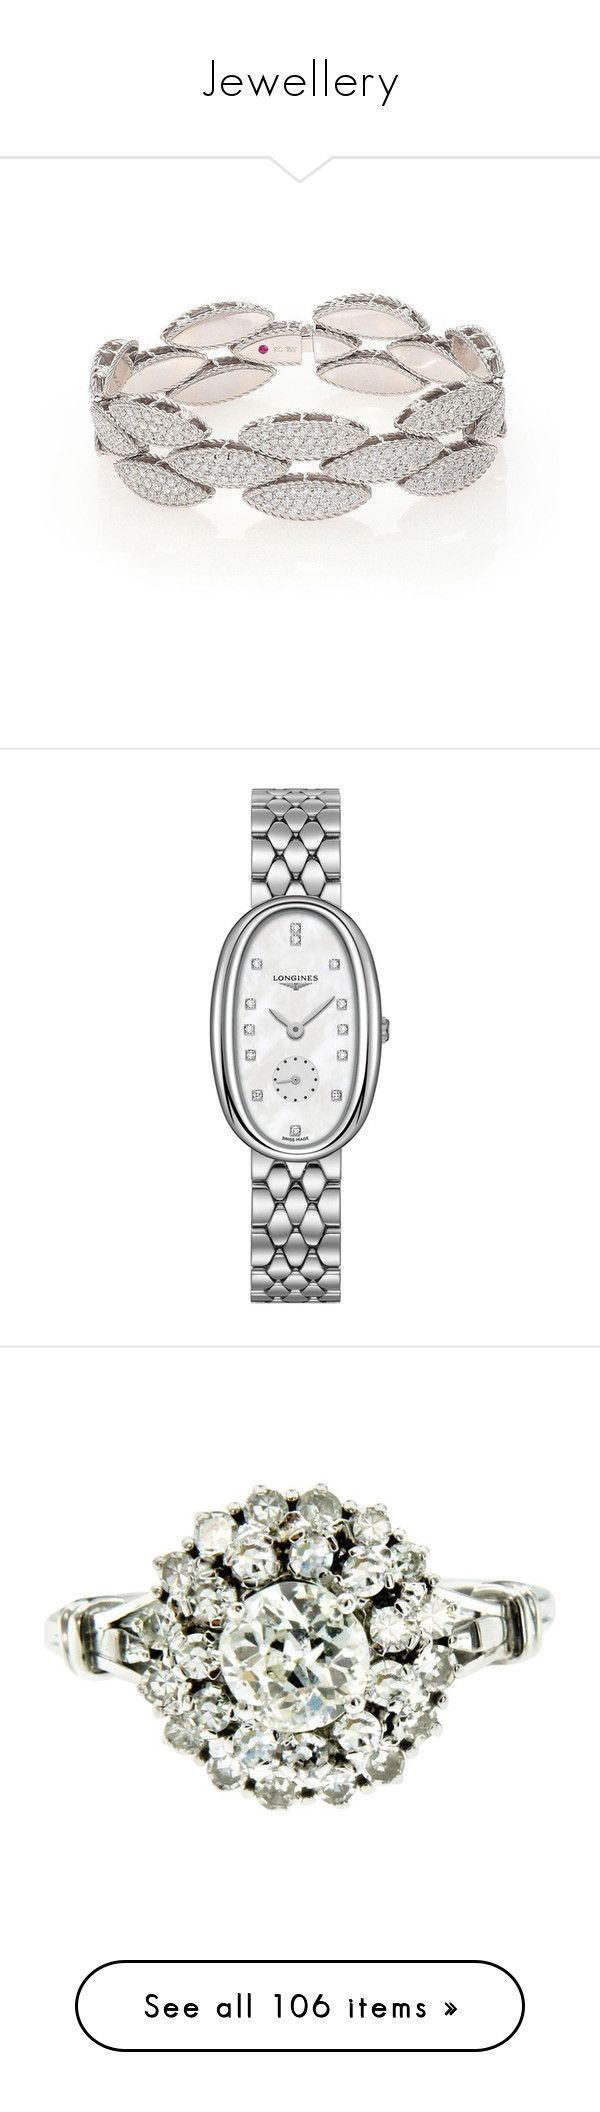 """Jewellery"" by fizzy76 ❤ liked on Polyvore featuring jewelry, bracelets, diamond fine jewelry, hinged bangle, white gold jewellery, fine jewelry, white gold bangle bracelet, watches, stainless steel and stainless steel jewellery"